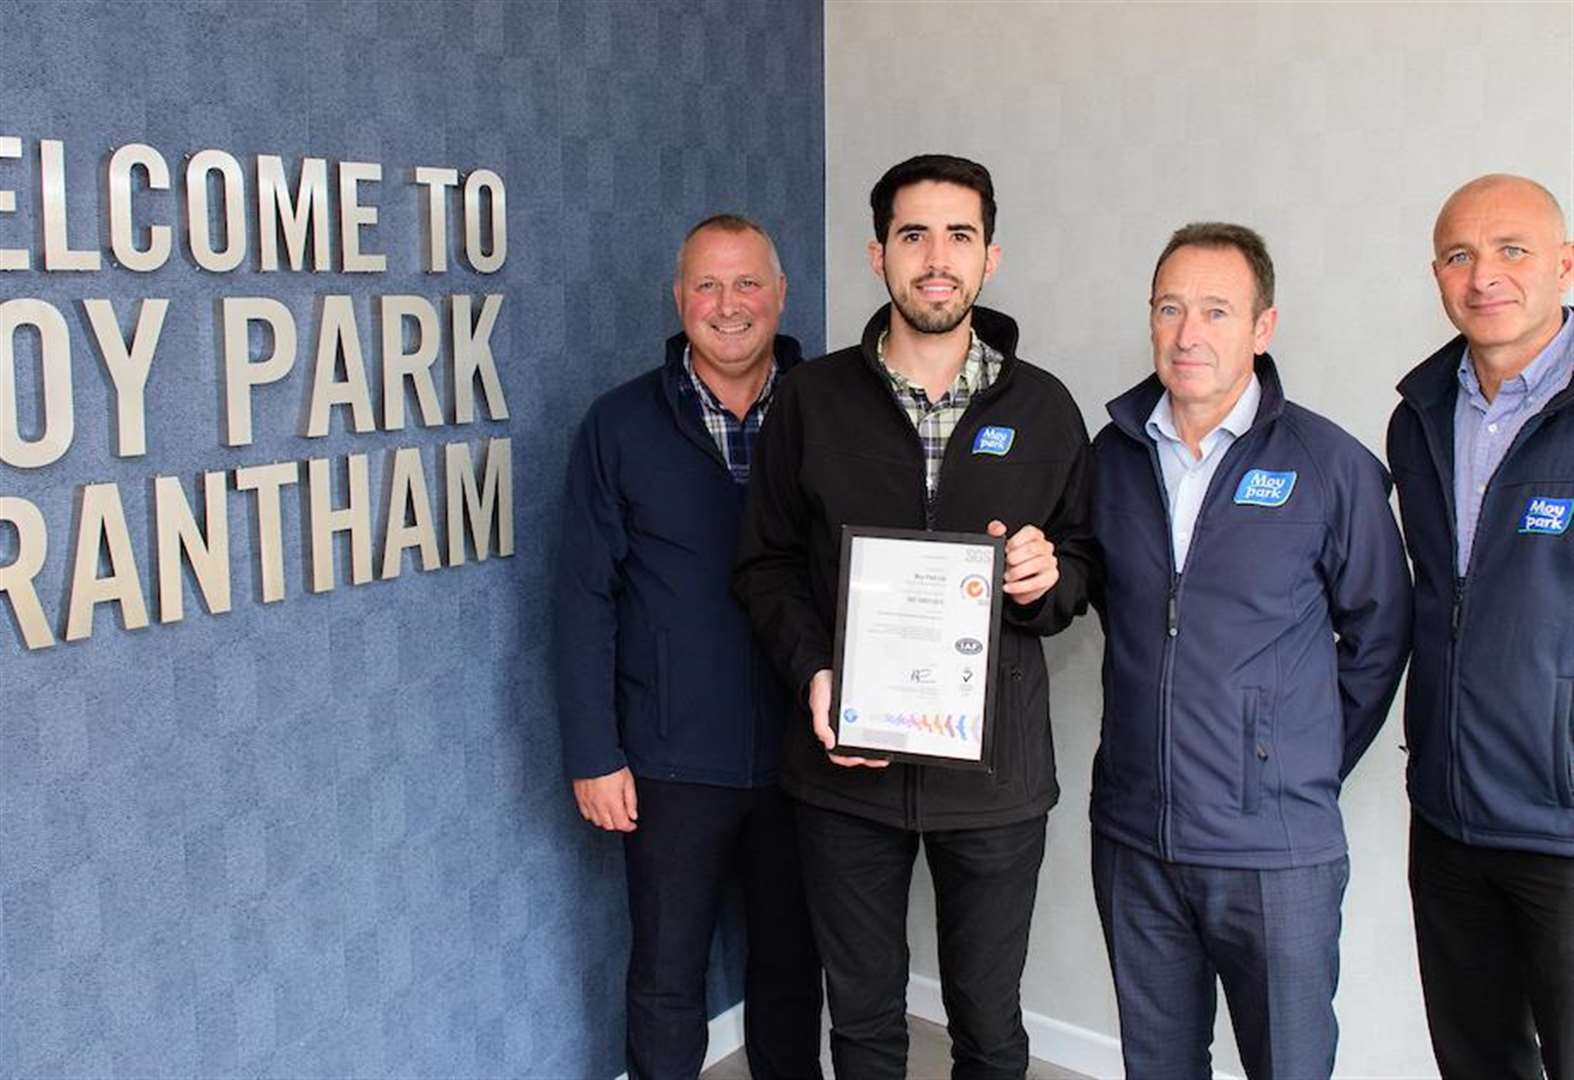 Moy Park Grantham receives international accreditation for environmental performance